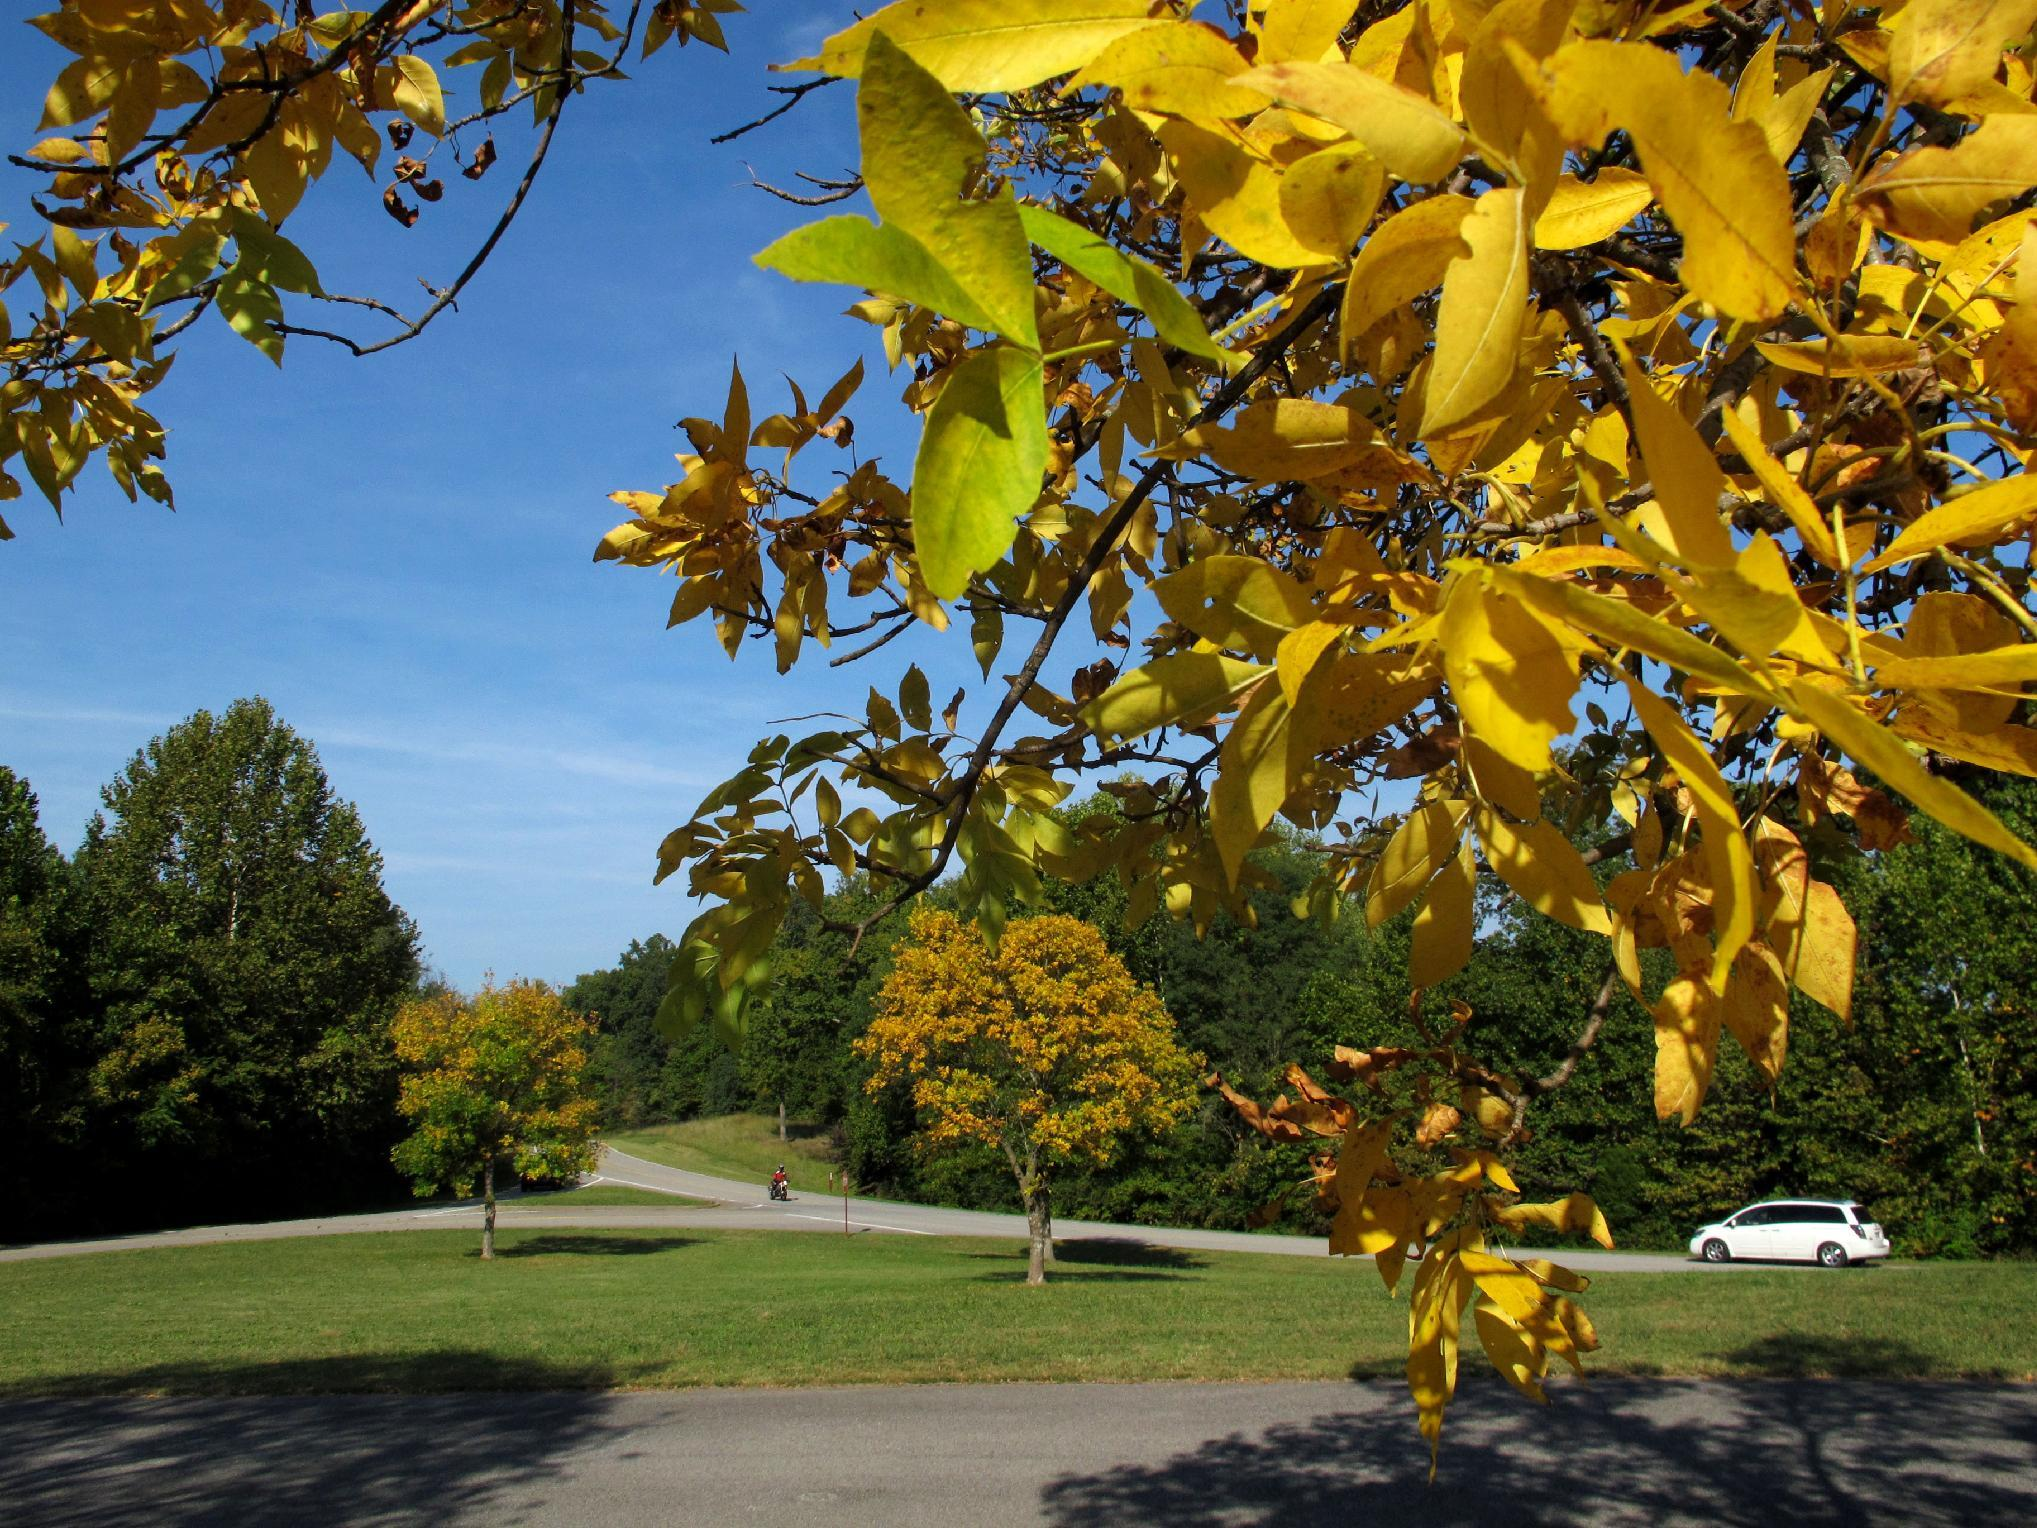 Trees display yellow leaves to motorists on Saturday, Sept. 29, 2012, on Natchez Trace Parkway in Williamson County, Tenn. As days get shorter and nights become chillier, the annual fall foliage show is getting under way in the Southern Appalachians. (AP Photo/Teresa Wasson)